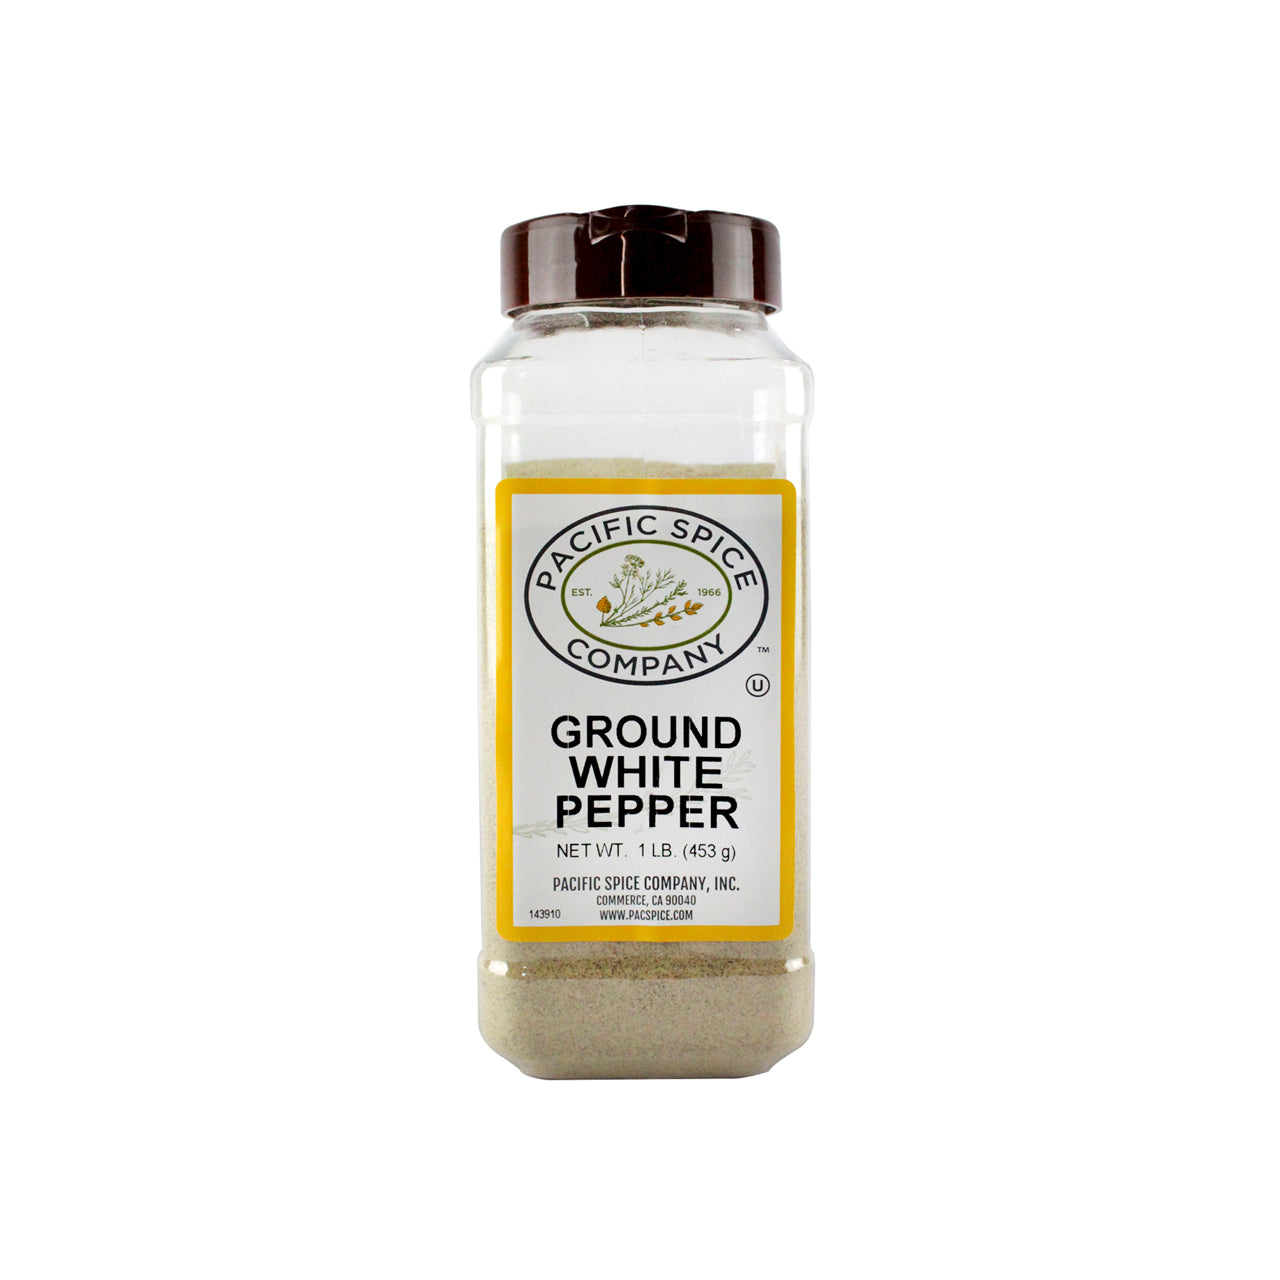 Pacific Spice Company White Pepper 1lb (453g) (SKU: 30322-1)